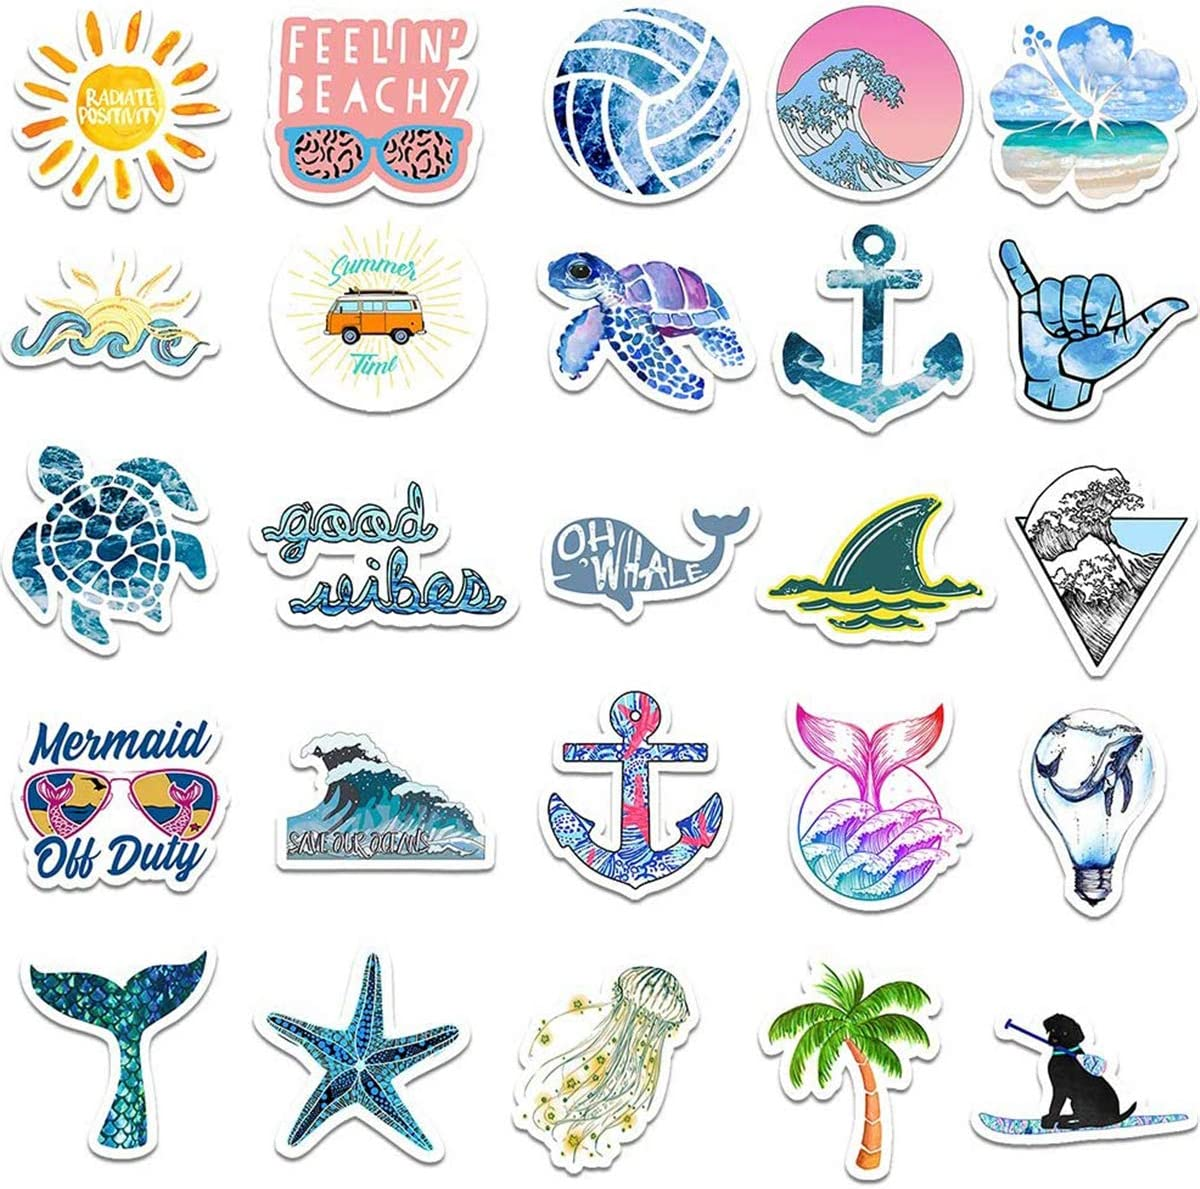 Vinyl Decals Waterproof The Beach Surfing Girls Beach Stickers 50pcs Blue Surfing Waves Fresh Lively Turtle Laptop and Water Bottle Vinyl Decals Cartoon Vitality Aesthetic Sticker Pack for Teens